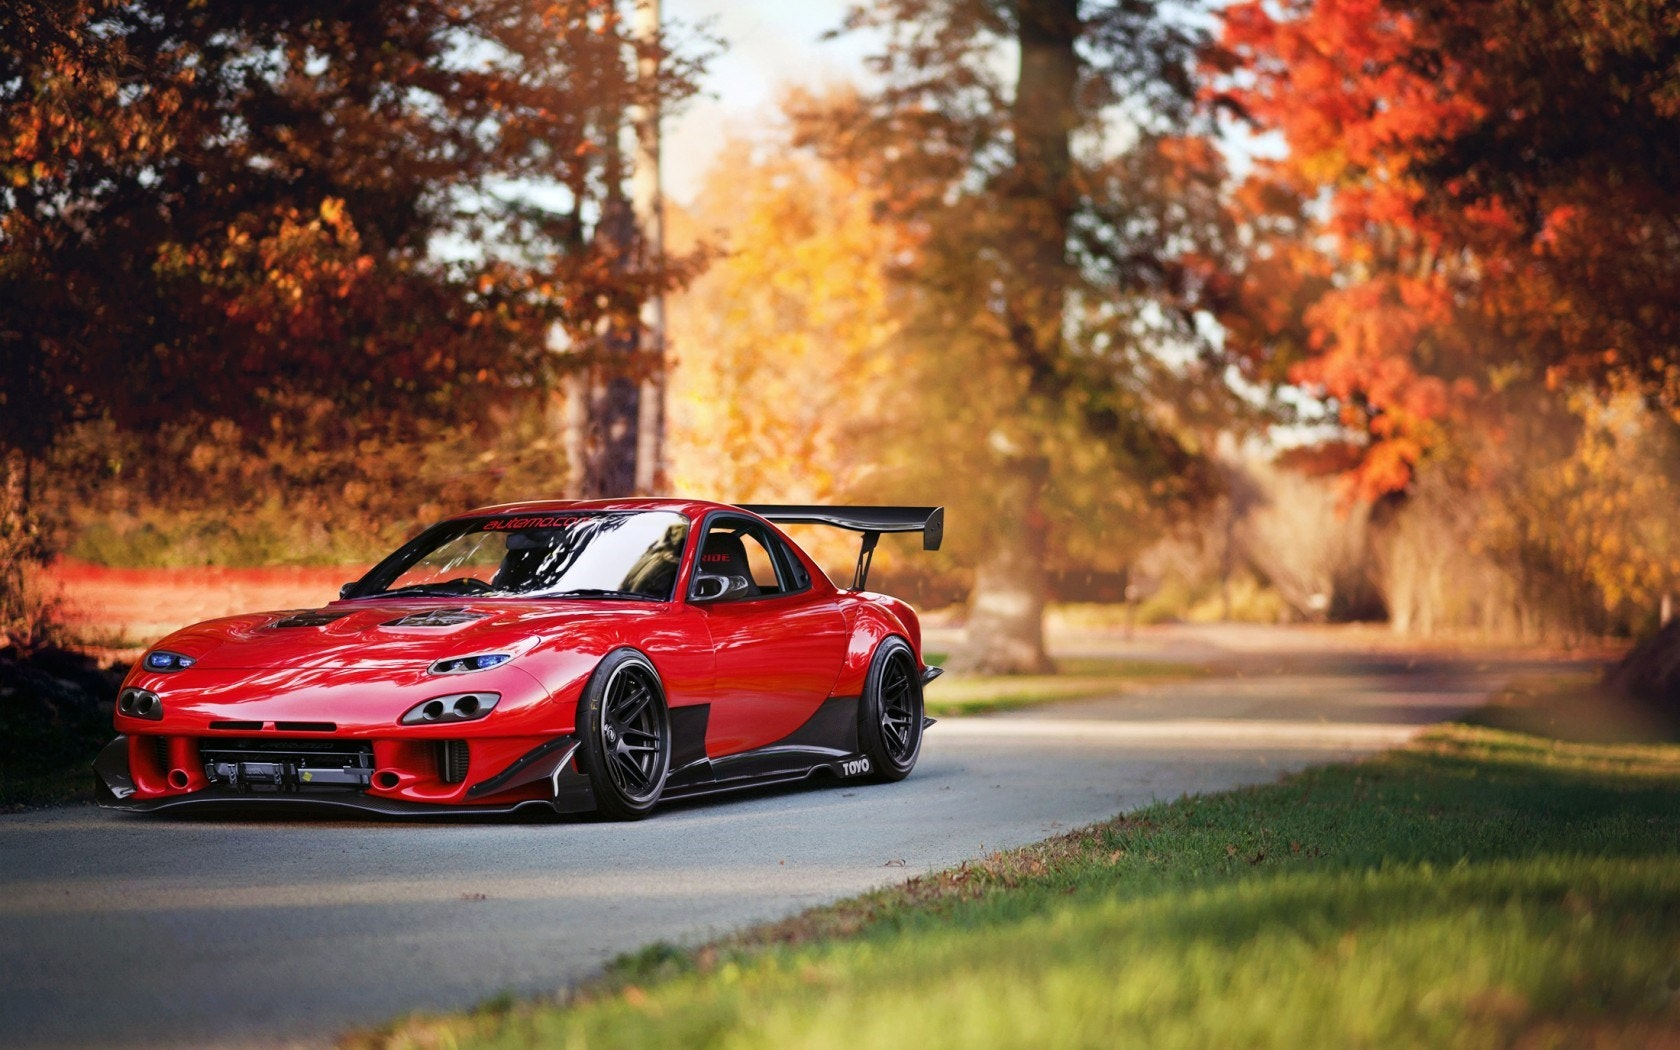 What You Should Know If You're Buying an RX-7